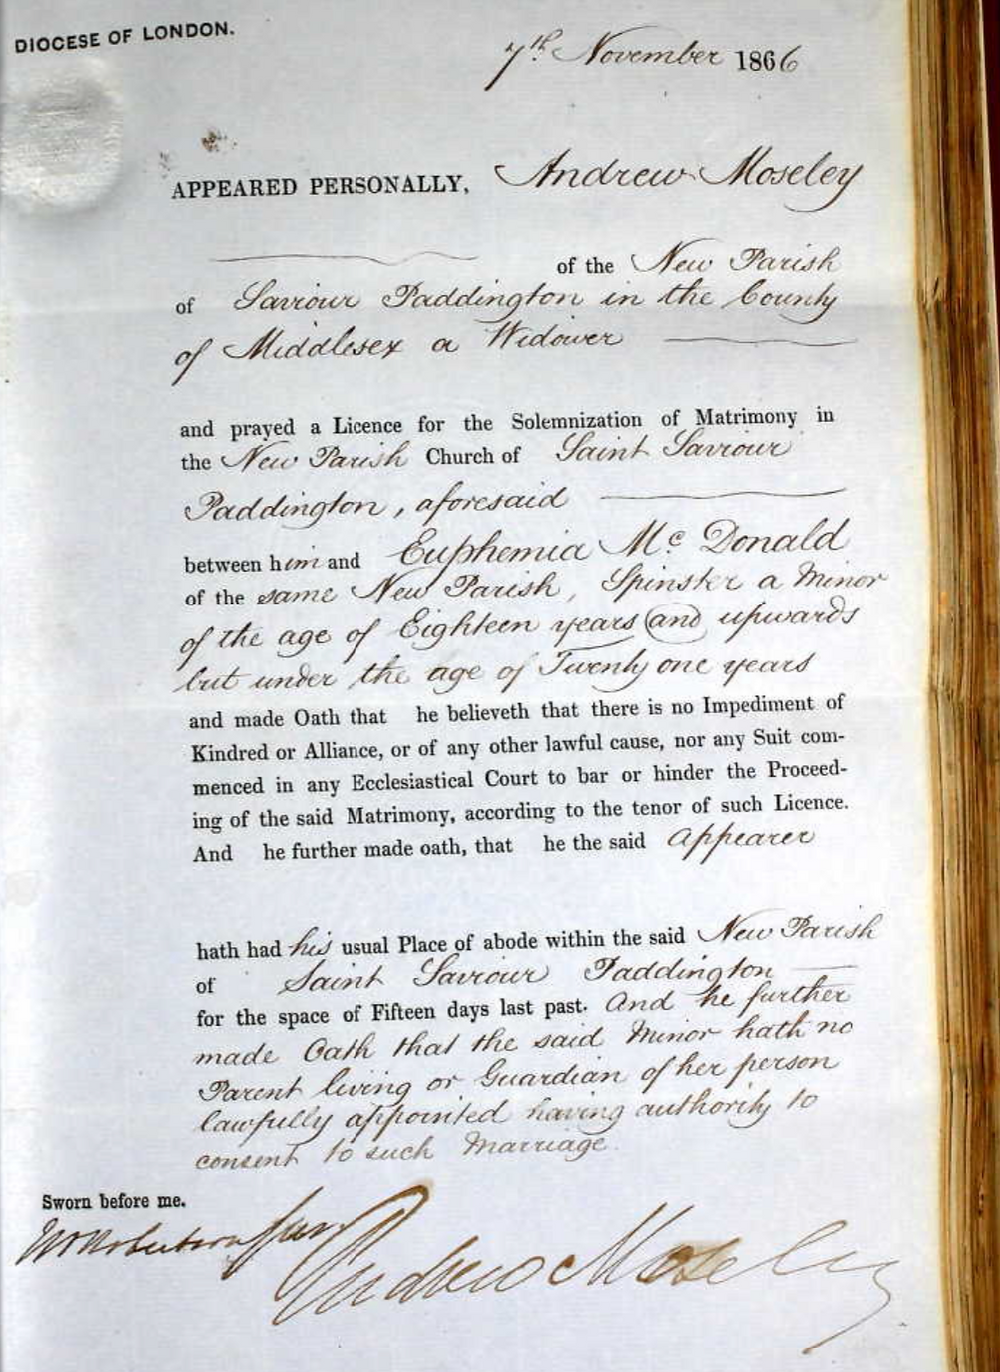 Marriage banns record of Andrew Moseley and Euphemia MacDonald.